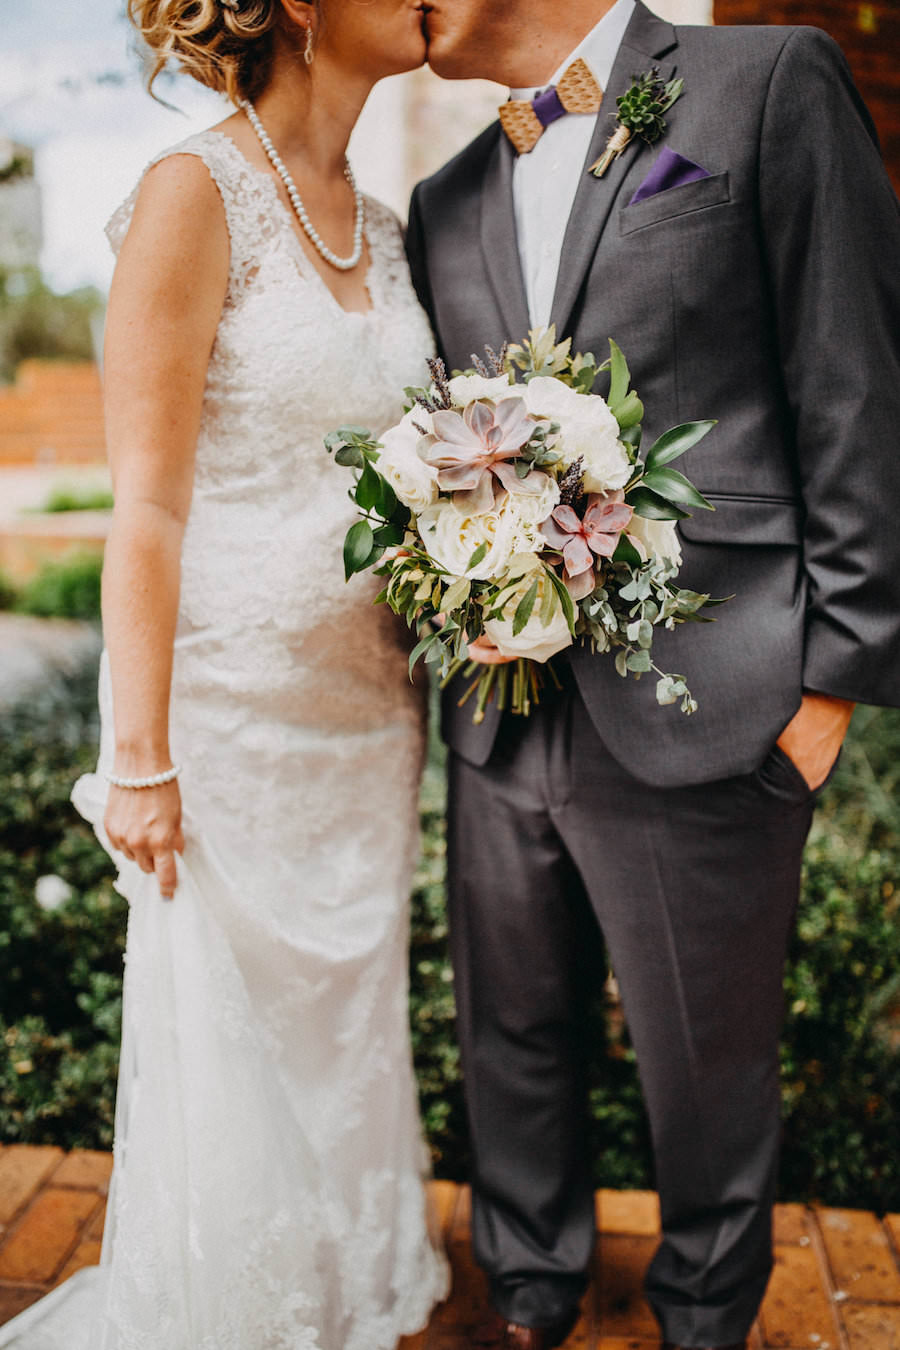 Bride and Groom Wedding Portrait with White Organic Bouquet with Greenery   Tampa Bay Wedding Photographer Rad Red Creative